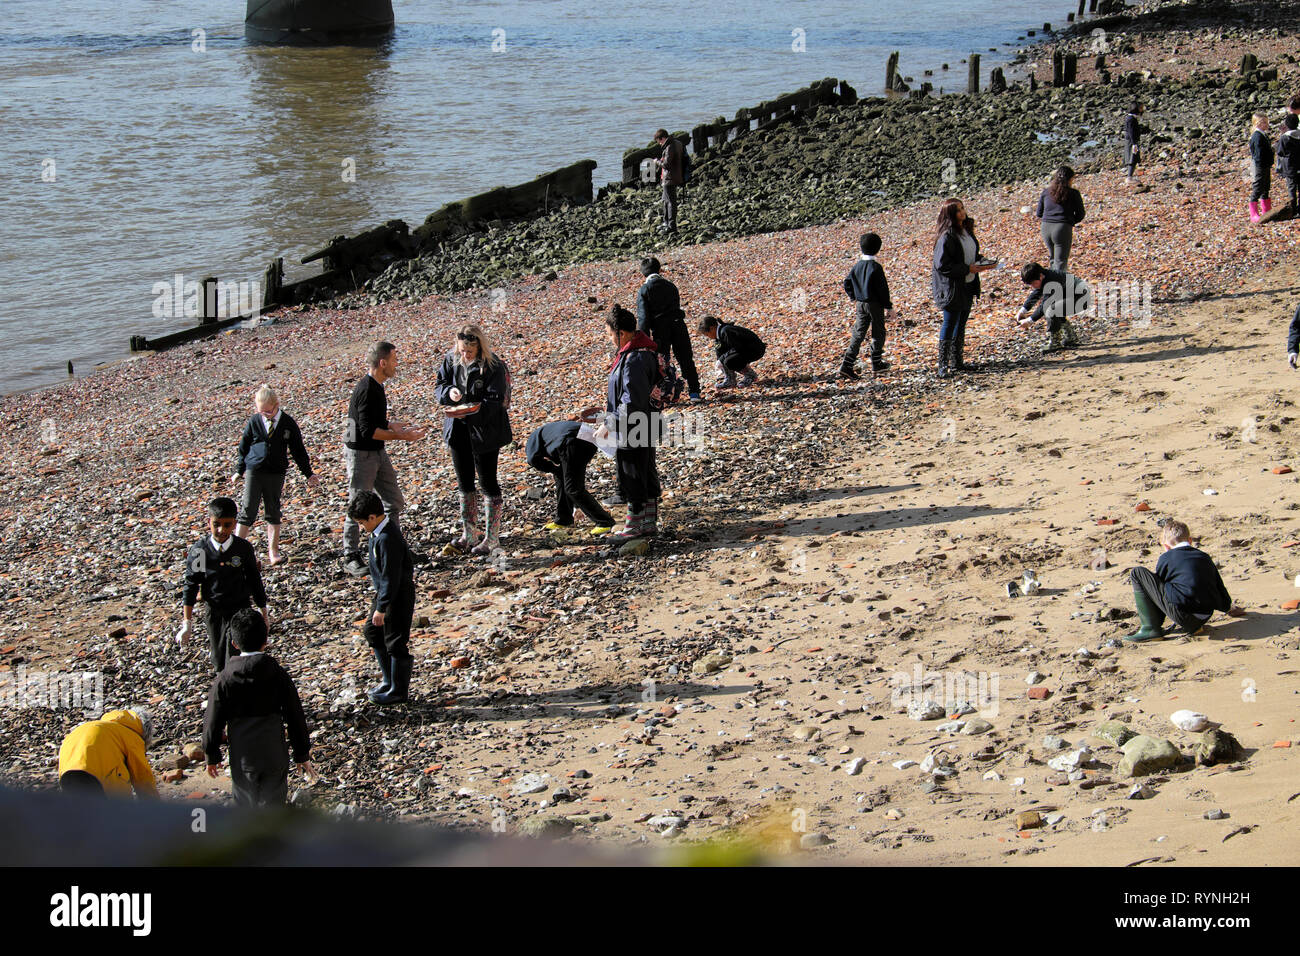 A view of schoolchildren school group mudlarking on the north sandy beach side of the River Thames in winter sunshine London England UK  KATHY DEWITT Stock Photo